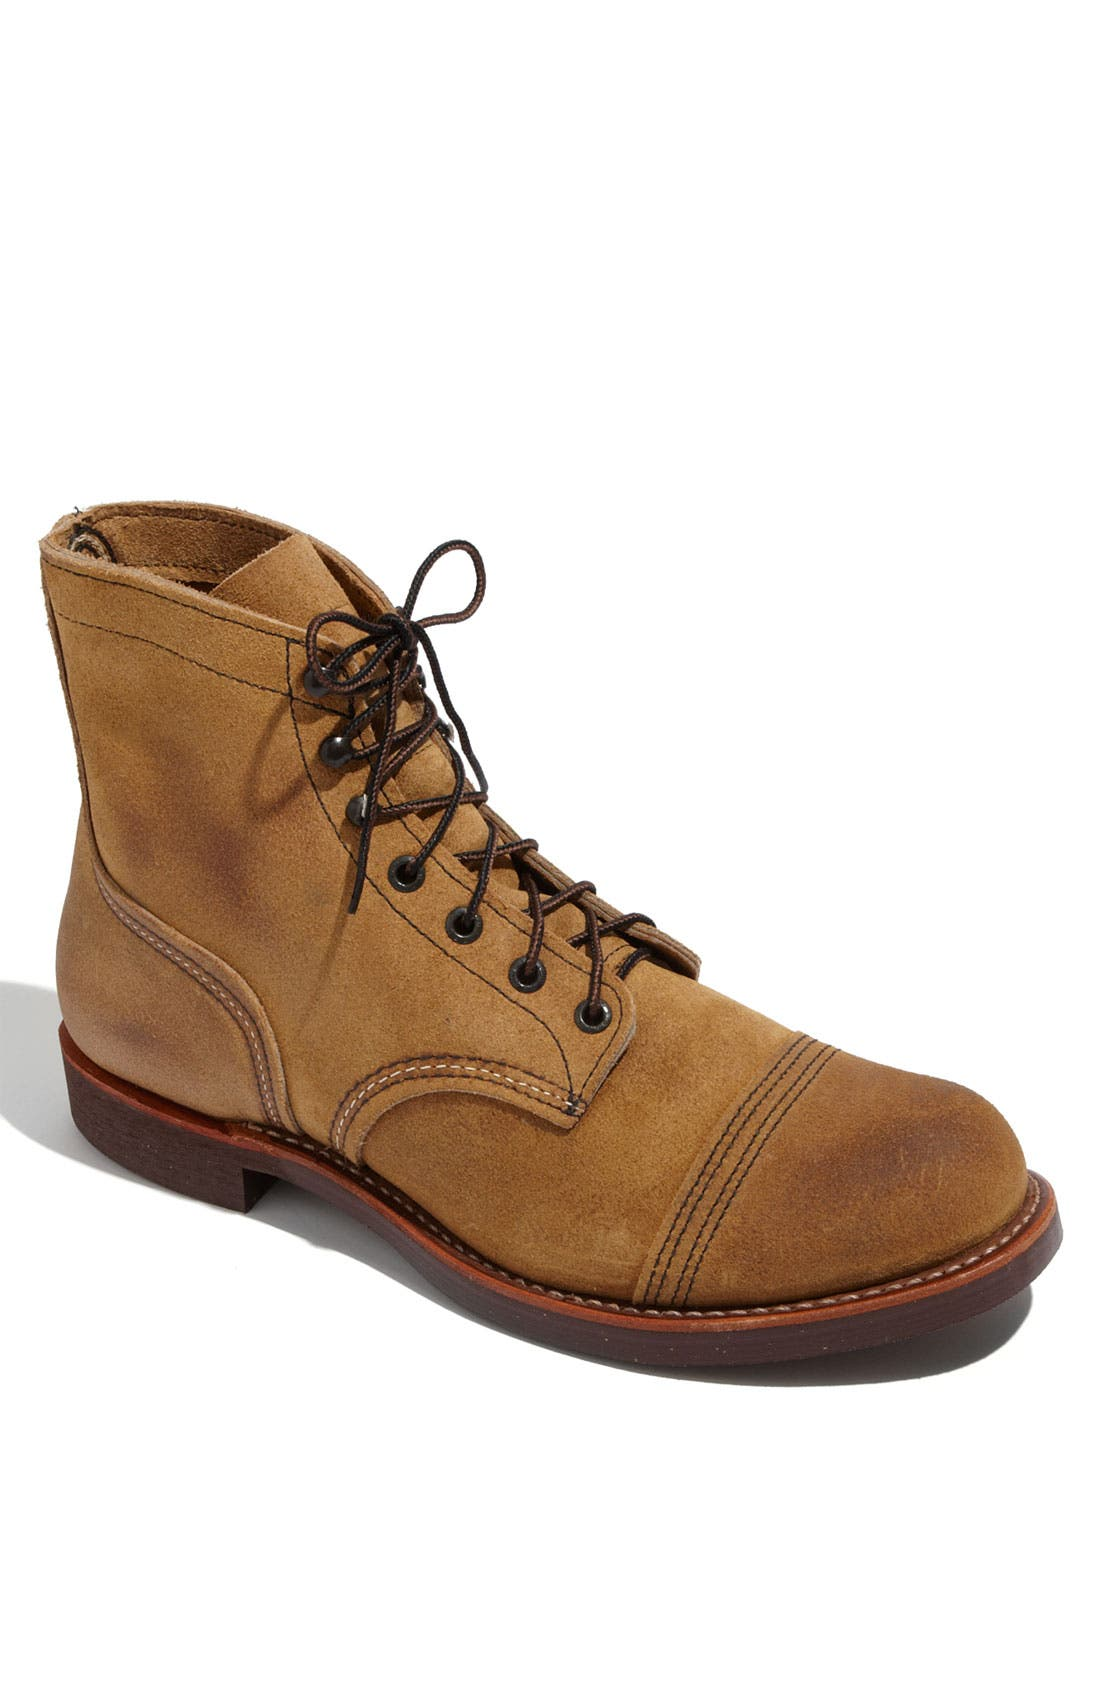 'Iron Ranger' 6 Inch Boot,                             Main thumbnail 1, color,                             AMBER HARNESS LEATHER